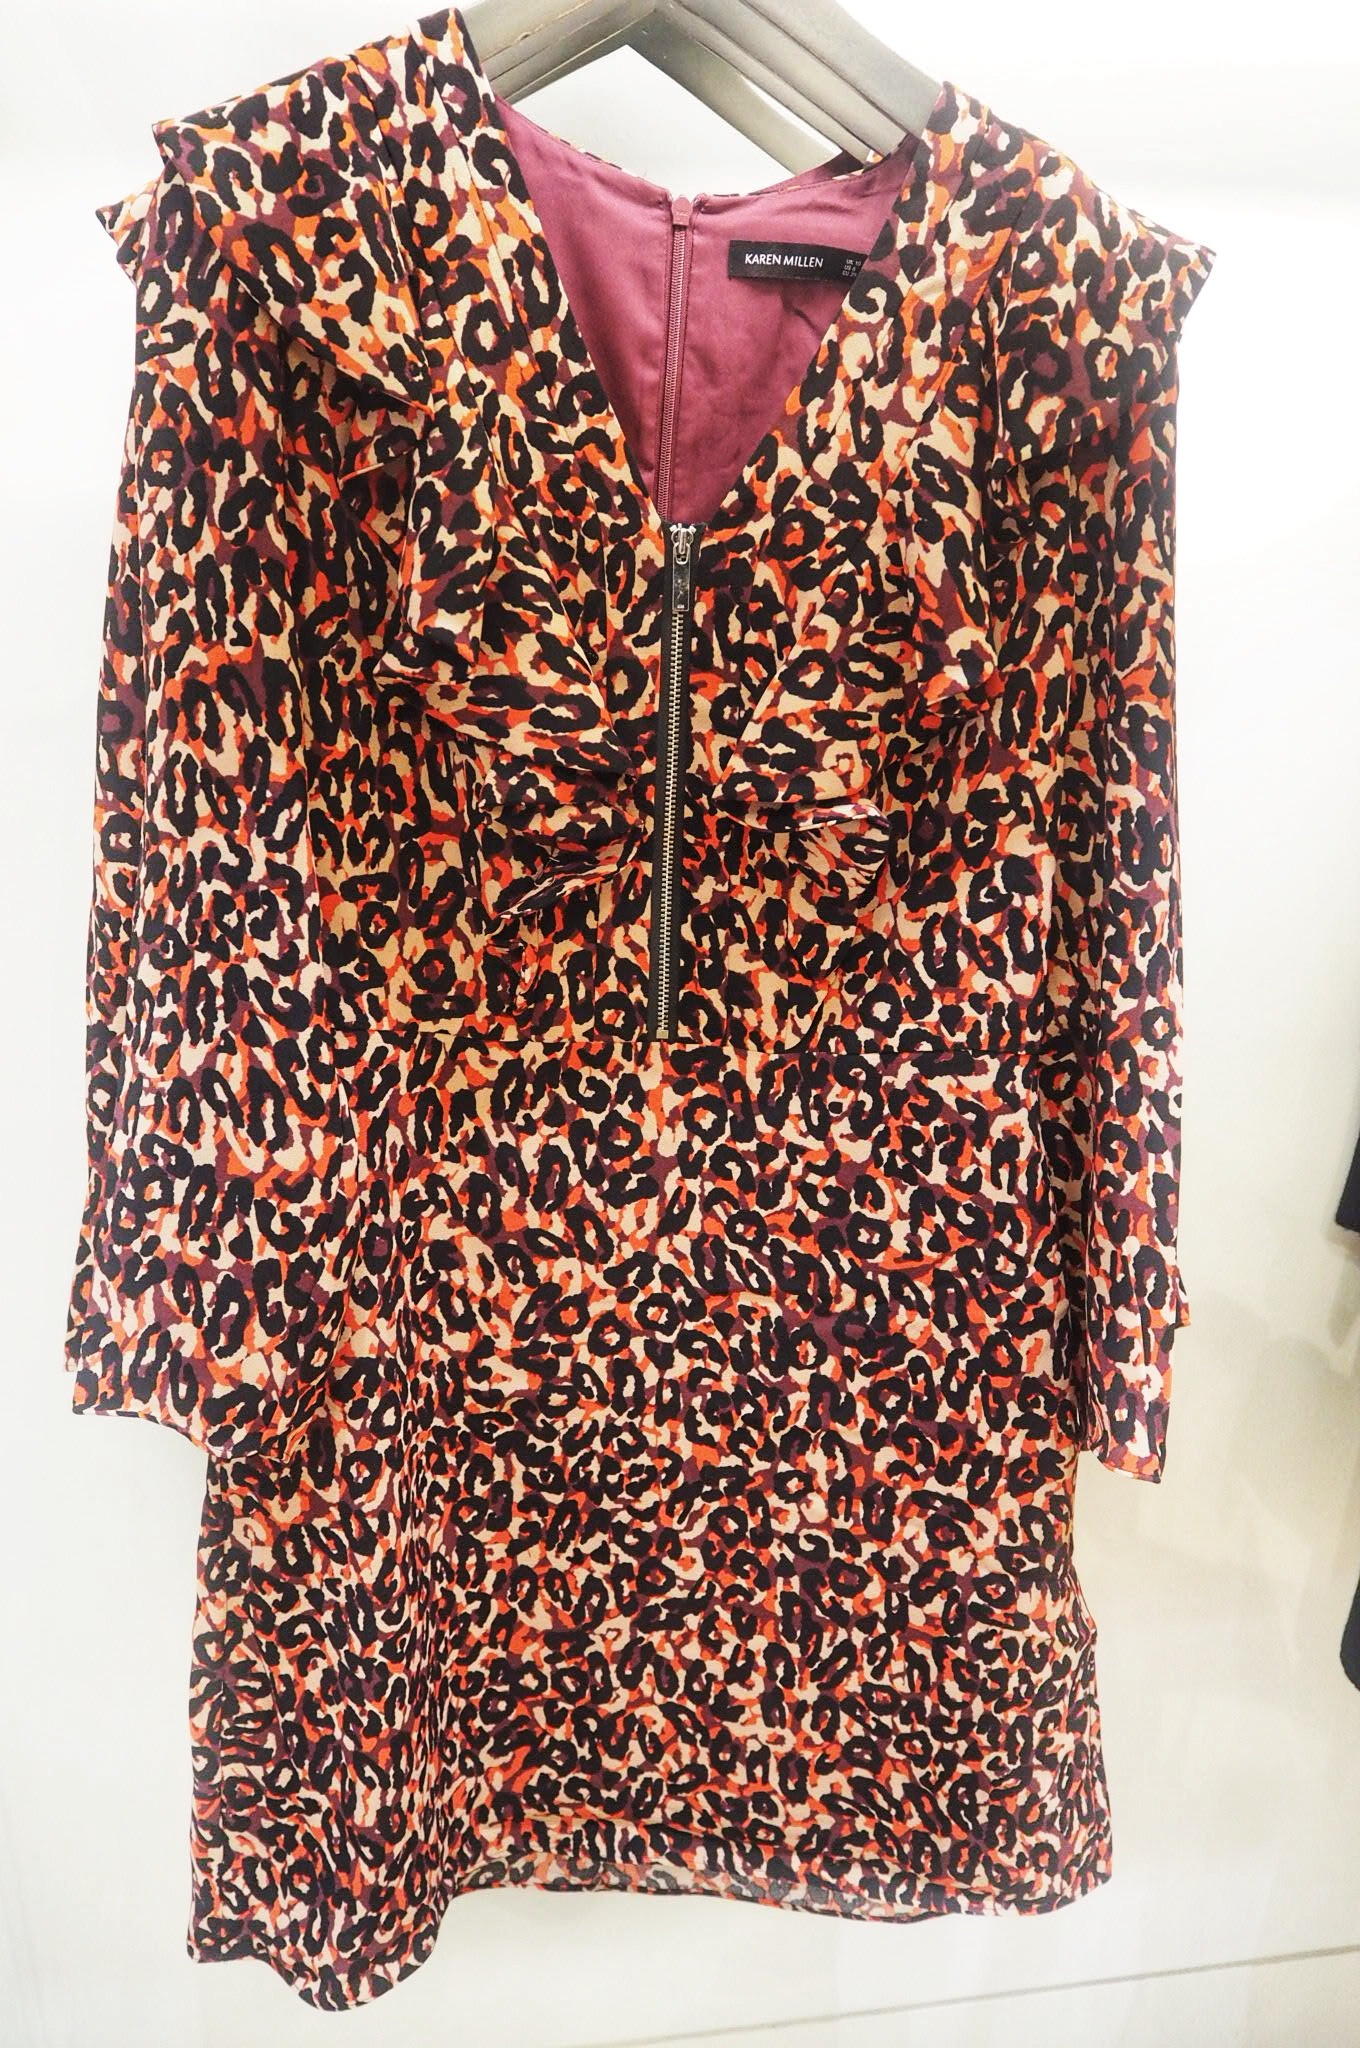 Karen Millen Leopard Print Mini Dress